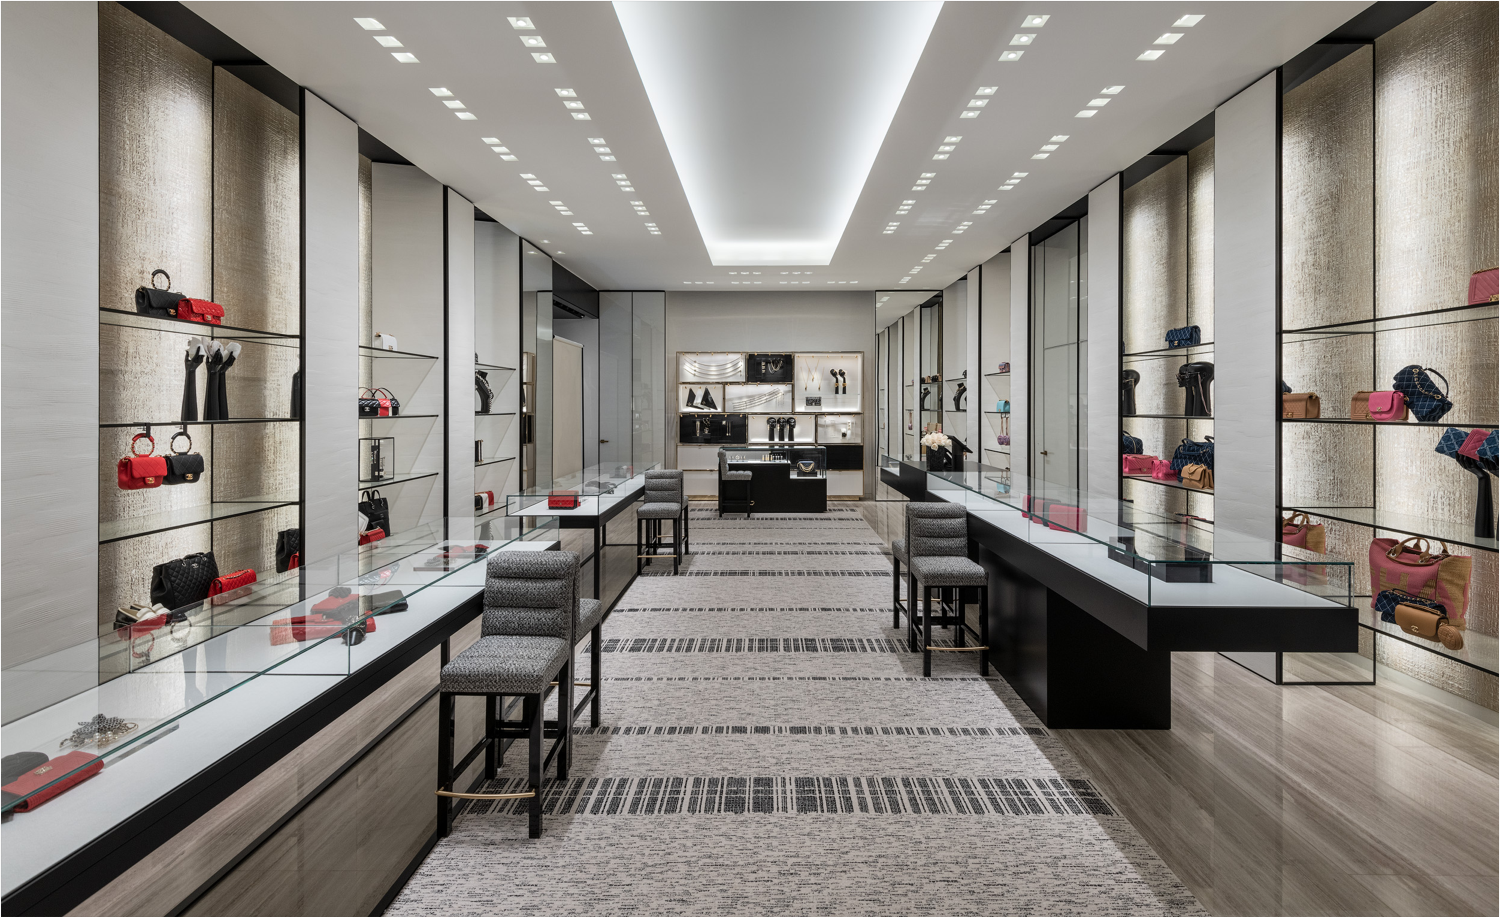 Chanel new store Montreal at Holt Renfrew Ogilvy